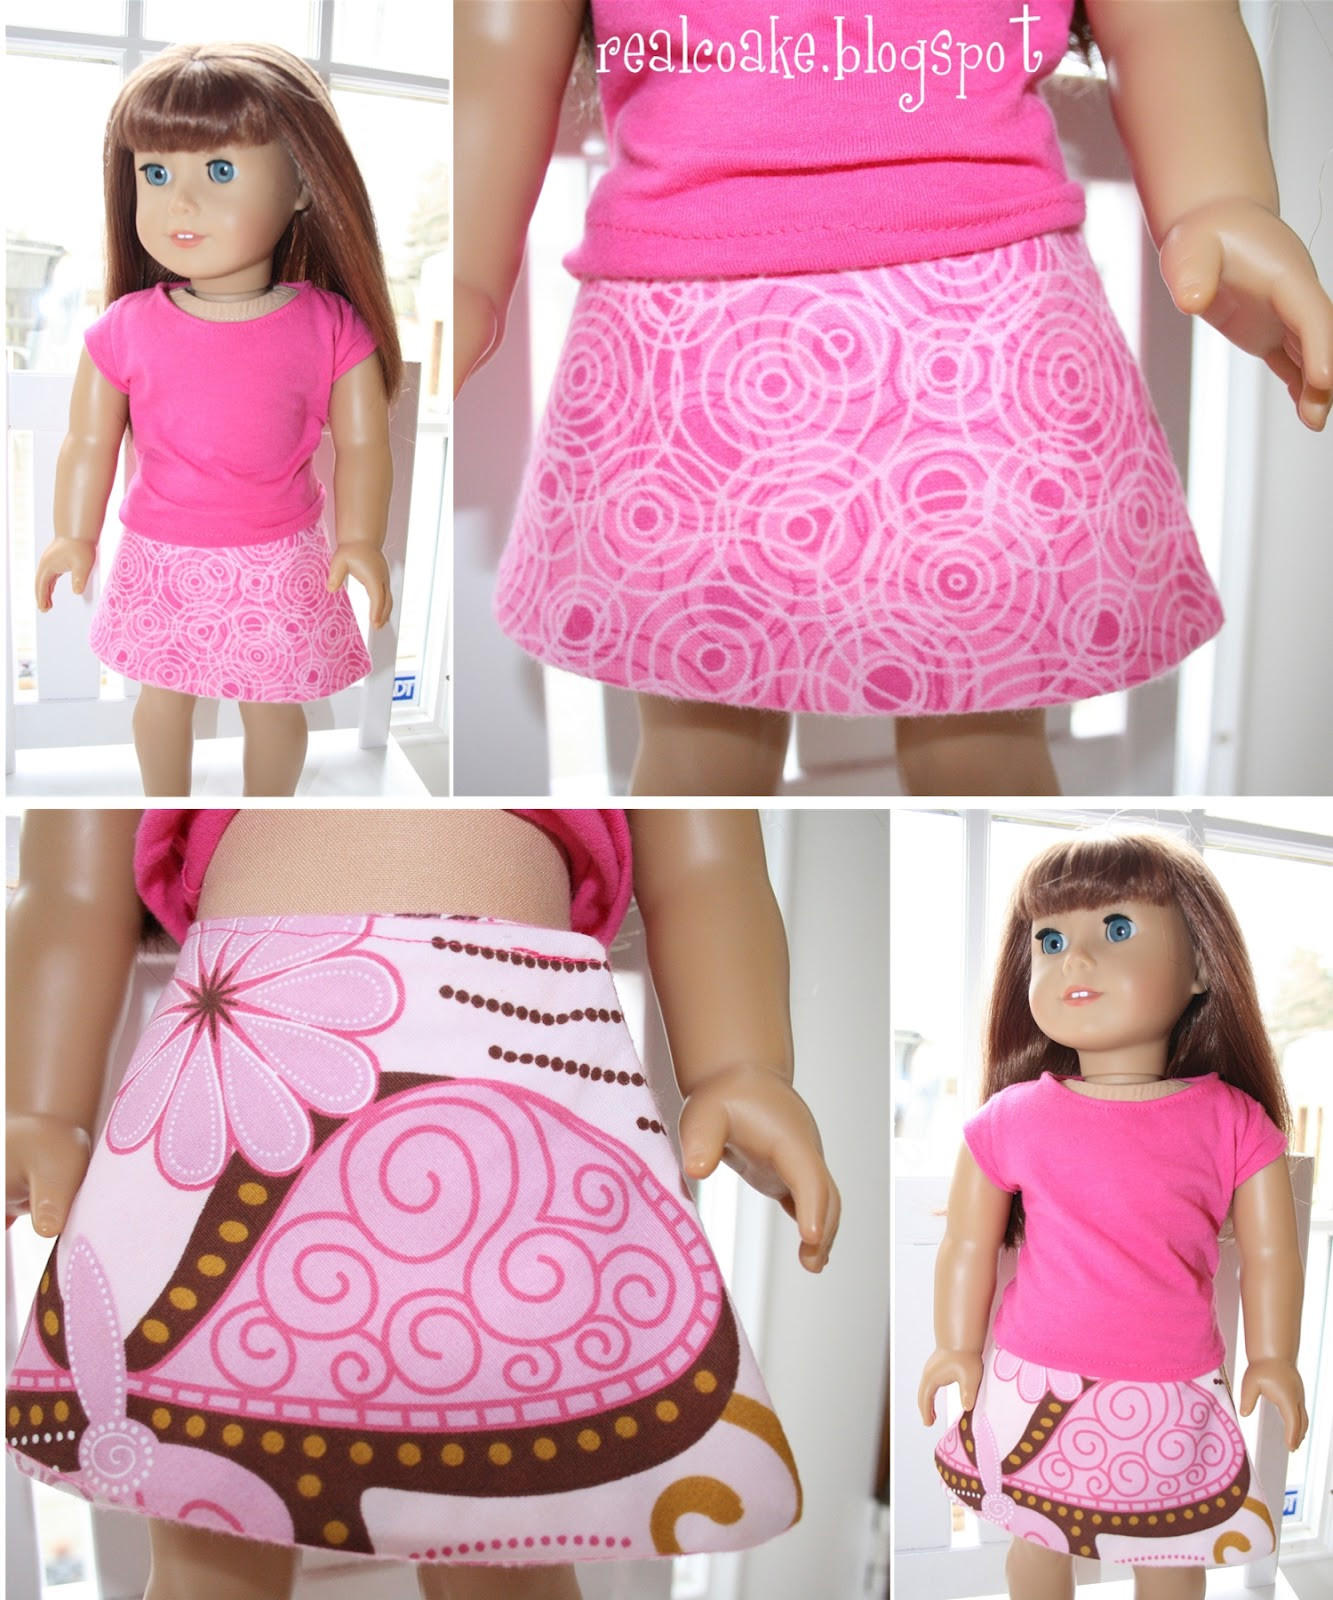 Best Of American Girl Doll Clothes Pattern to Sew A Reverisble Free American Girl Doll Clothes Patterns Of Lovely 49 Models Free American Girl Doll Clothes Patterns